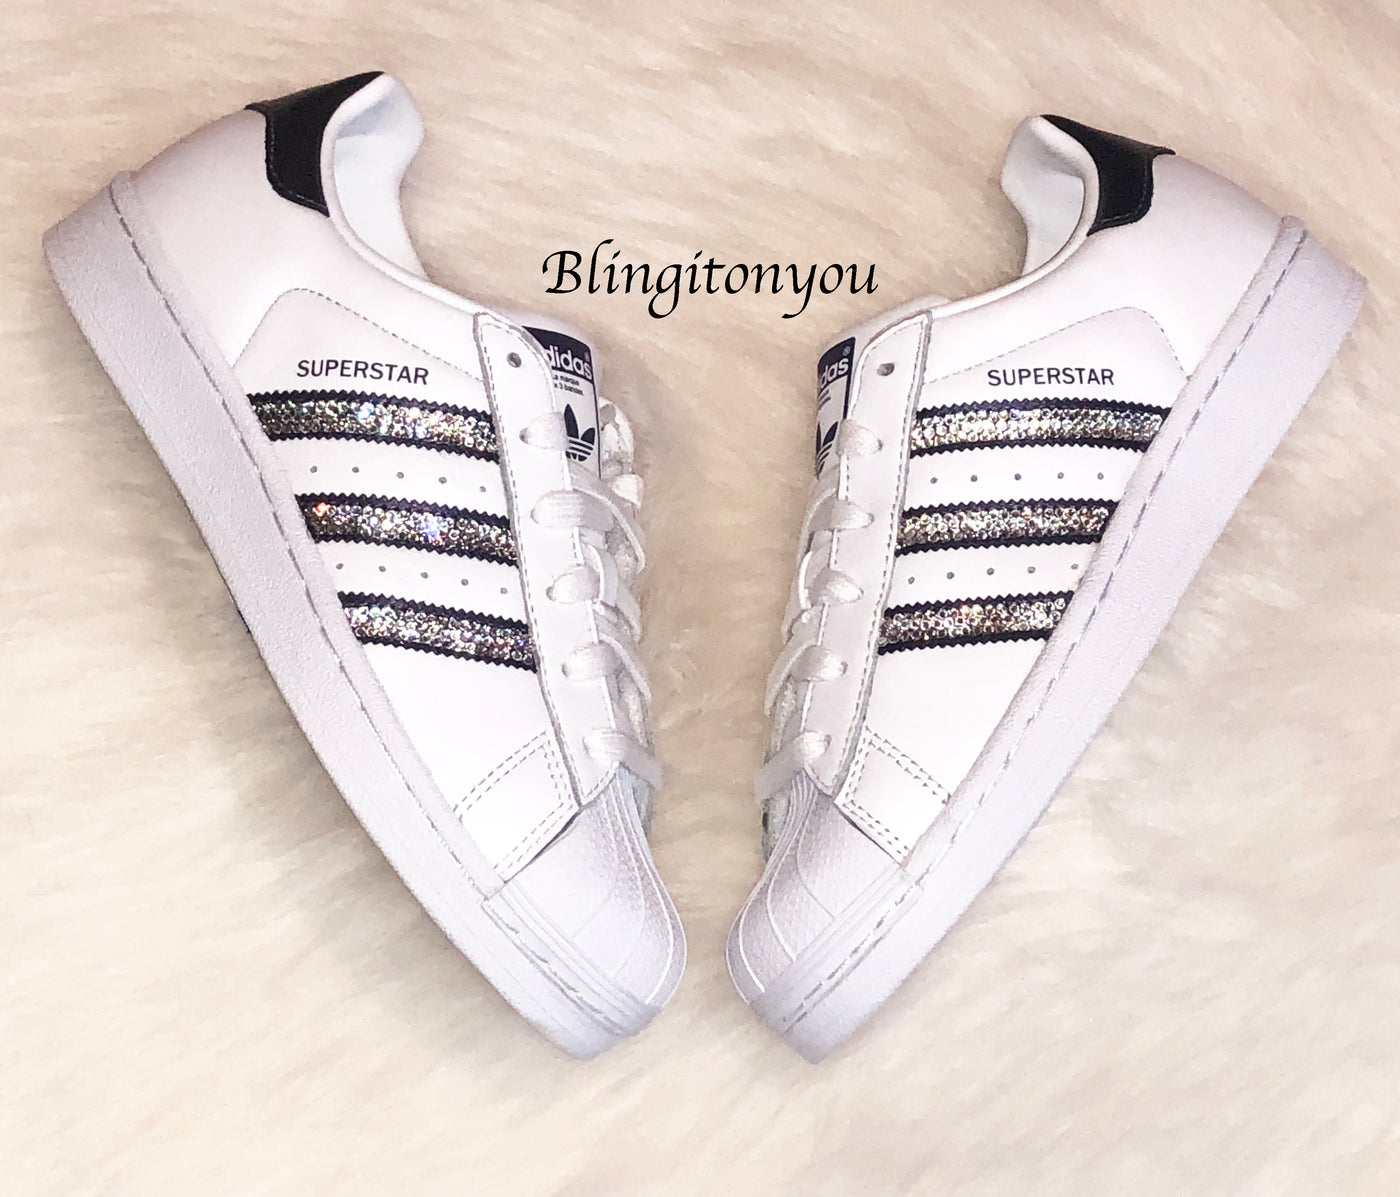 Brand New All White Superstar Adidas